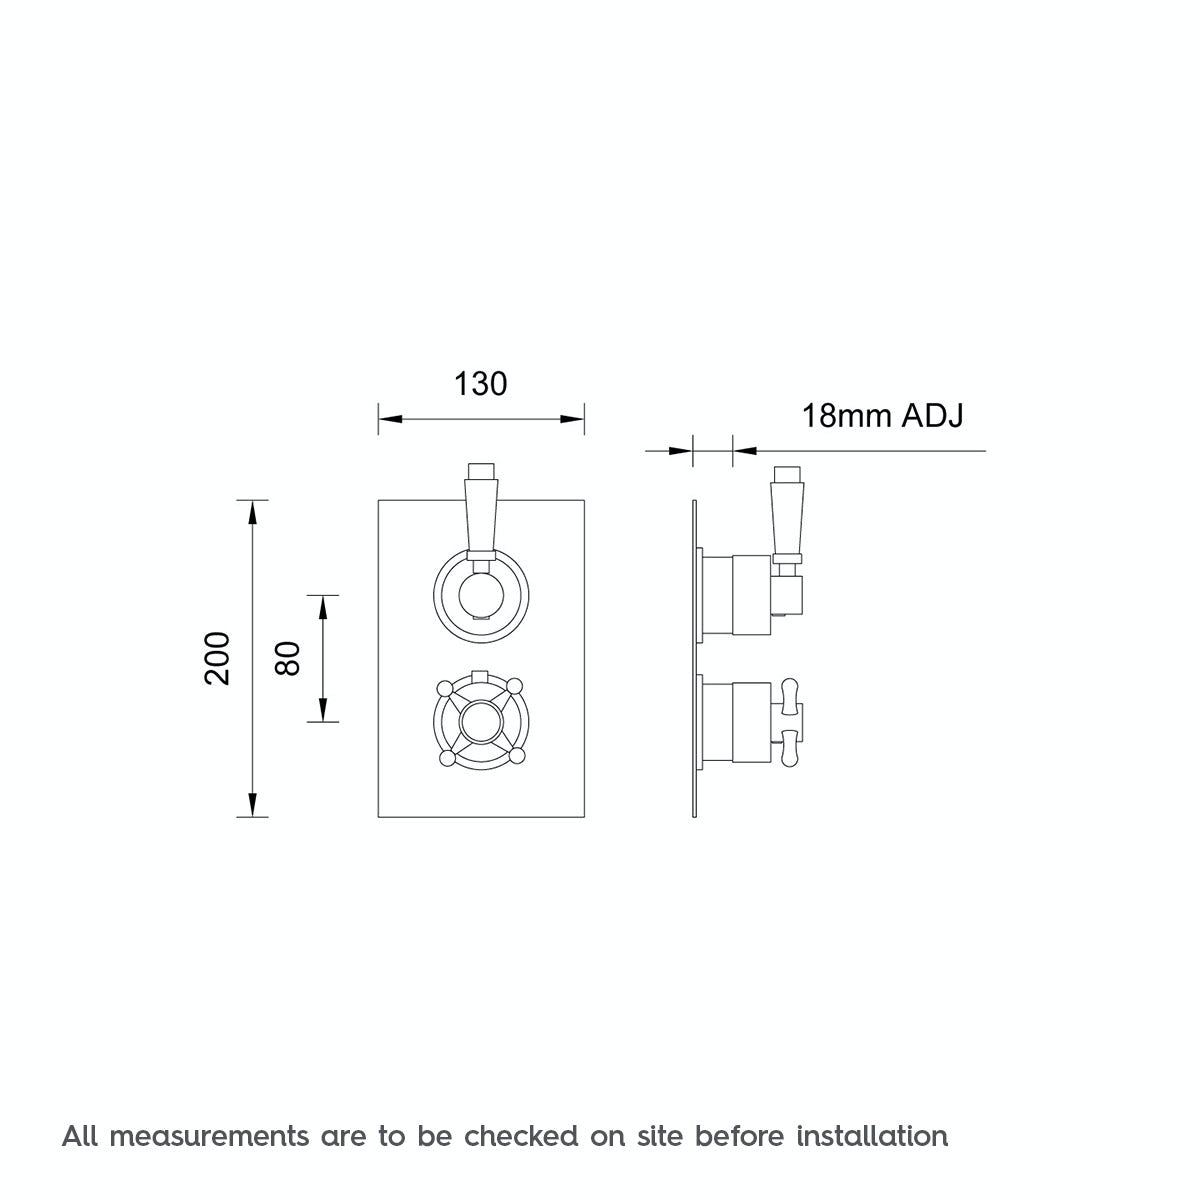 Dimensions for The Bath Co. Traditional square twin thermostatic shower valve with diverter